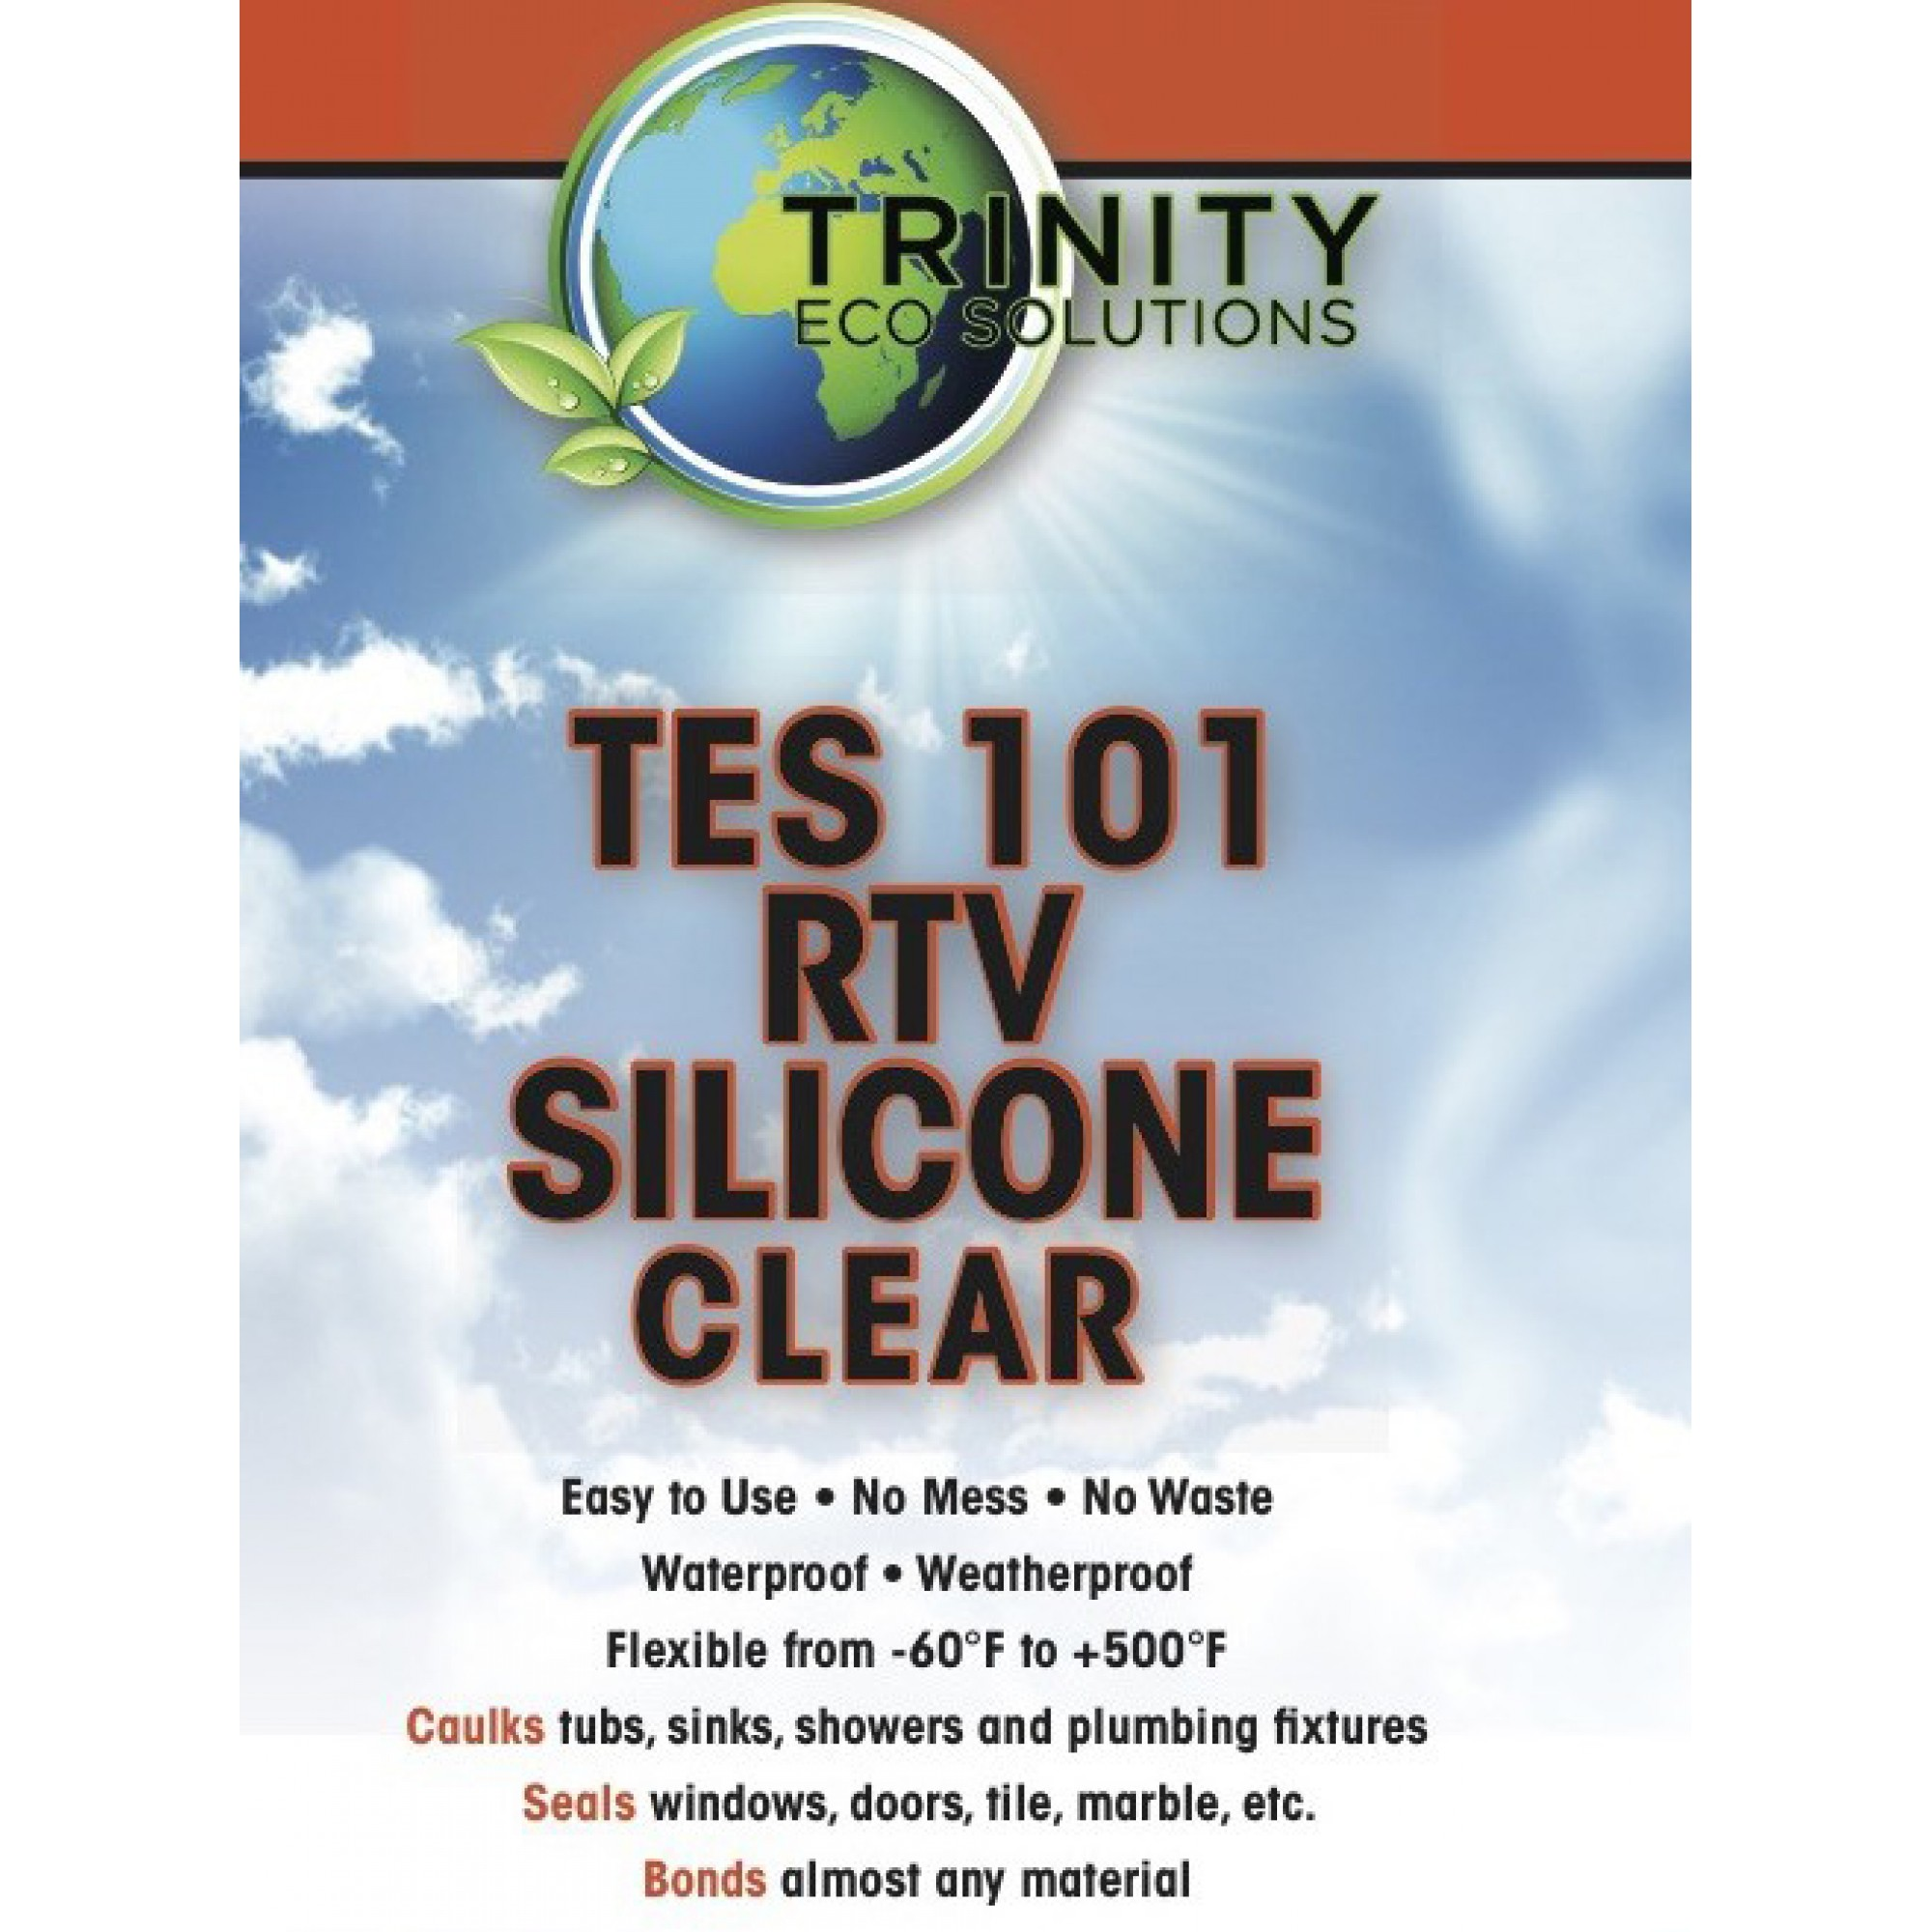 TES 101 RTV Silicone Clear